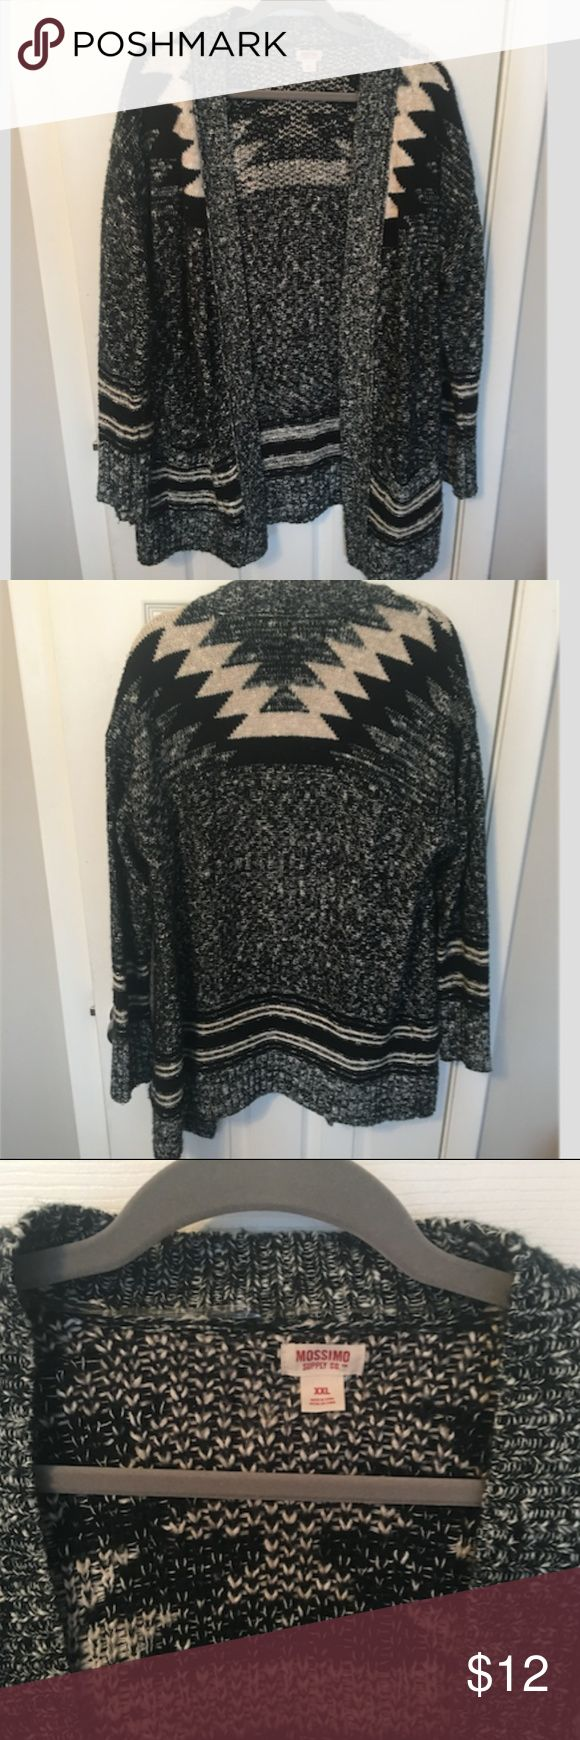 Mossimo Knit Black & White Tribal Print Cardigan A gorgeous black and white knit cardigan from Mossimo! Features a beautiful tribal-like pattern, with pockets on the front. Does not have any buttons or zips, simply hangs open in the front. In great condition. 52% Cotton 48% Acrylic. Size XXL. Mossimo Supply Co. Sweaters Cardigans